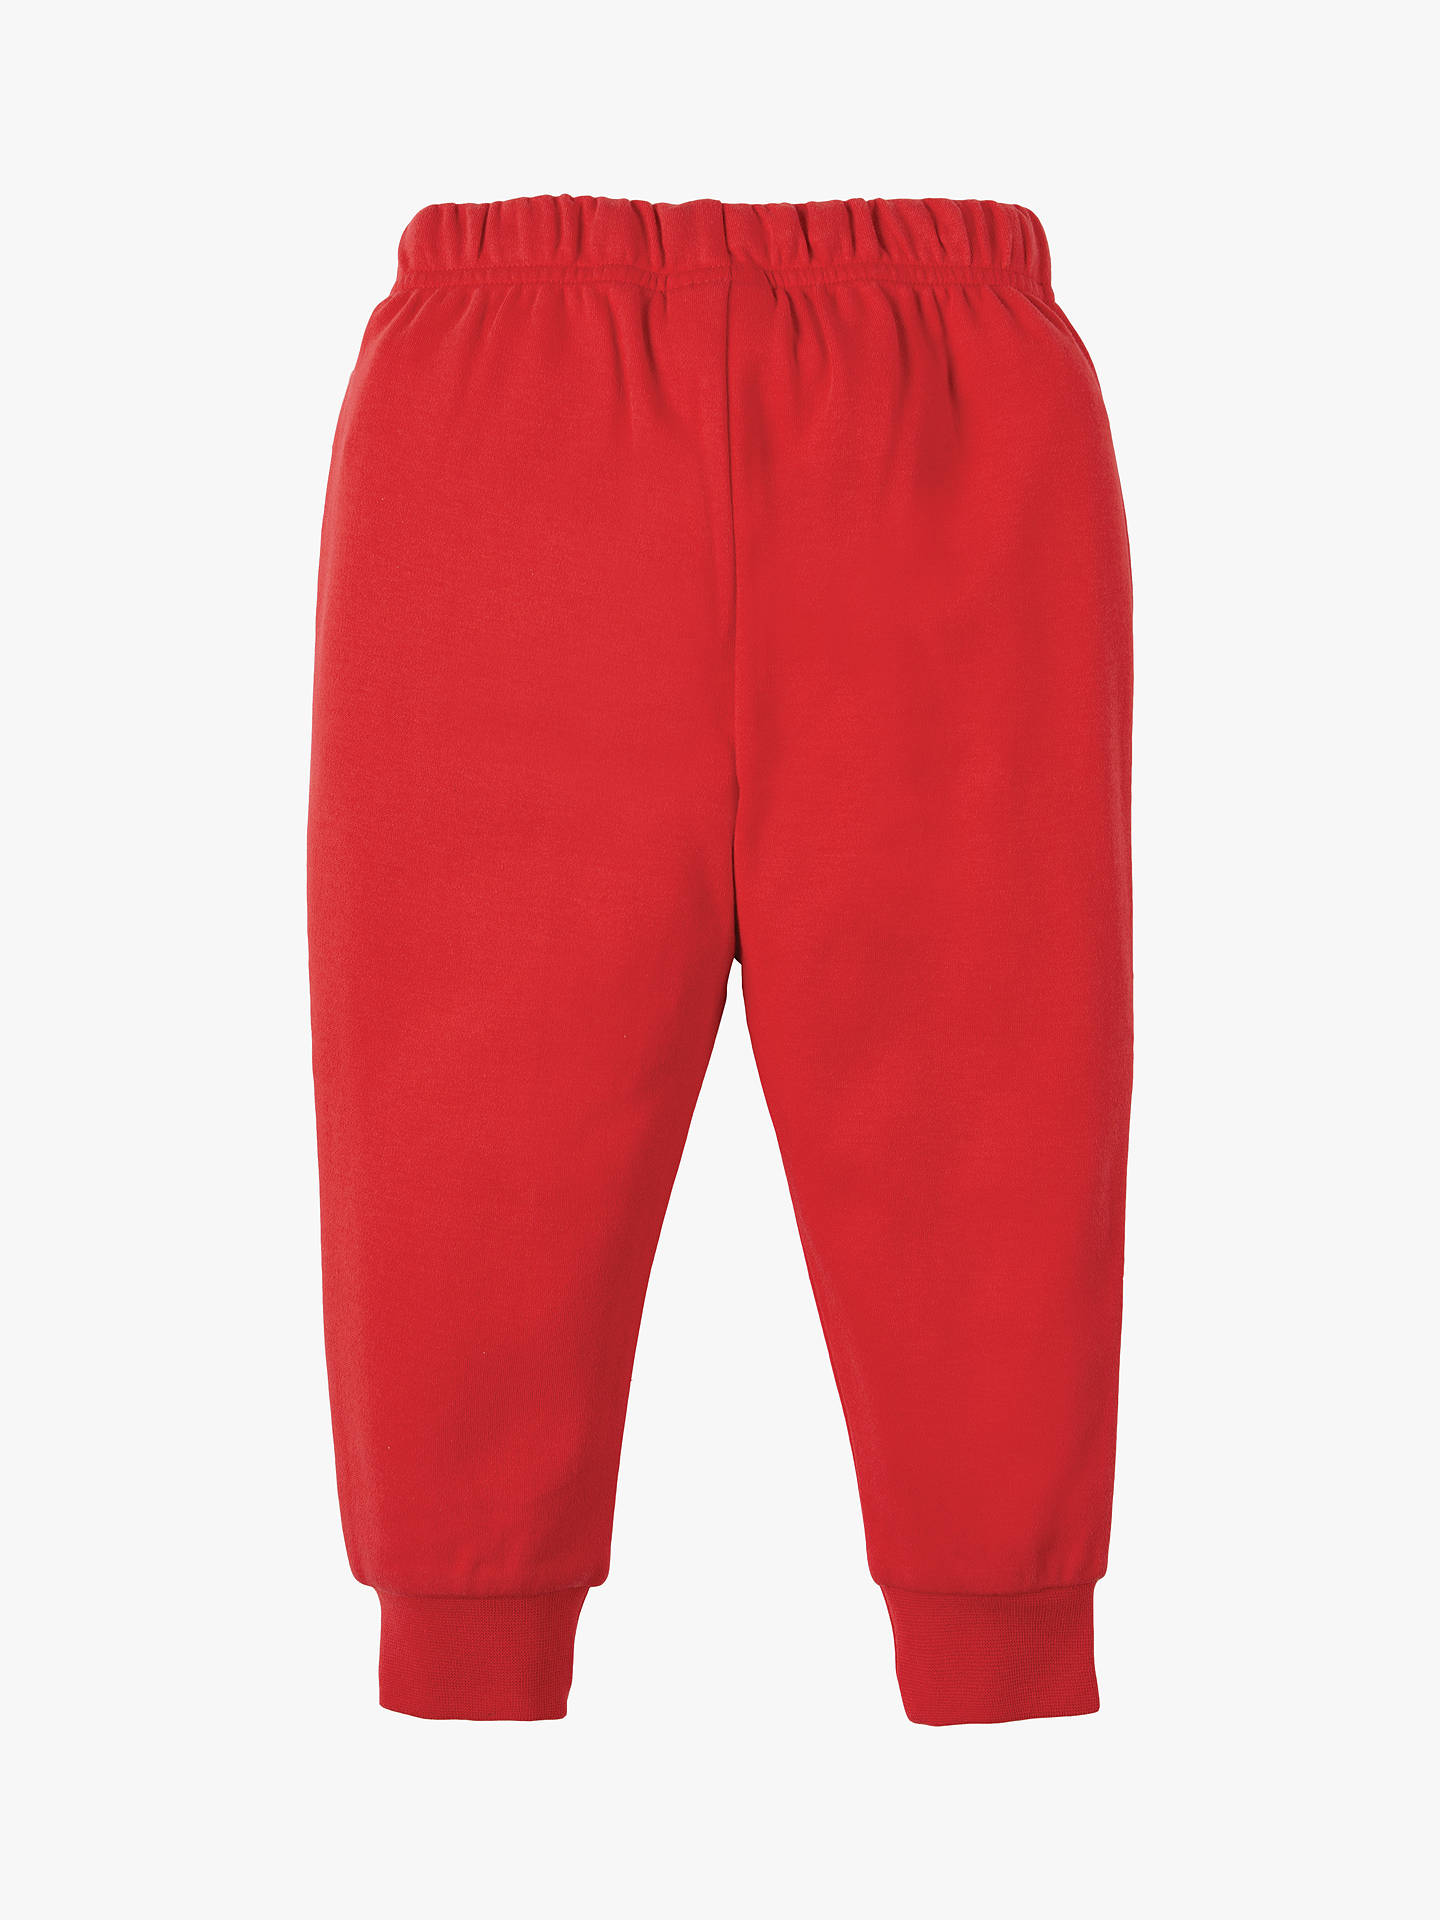 Frugi Baby Organic Cotton Star Knee Patch Joggers Red At John Lewis